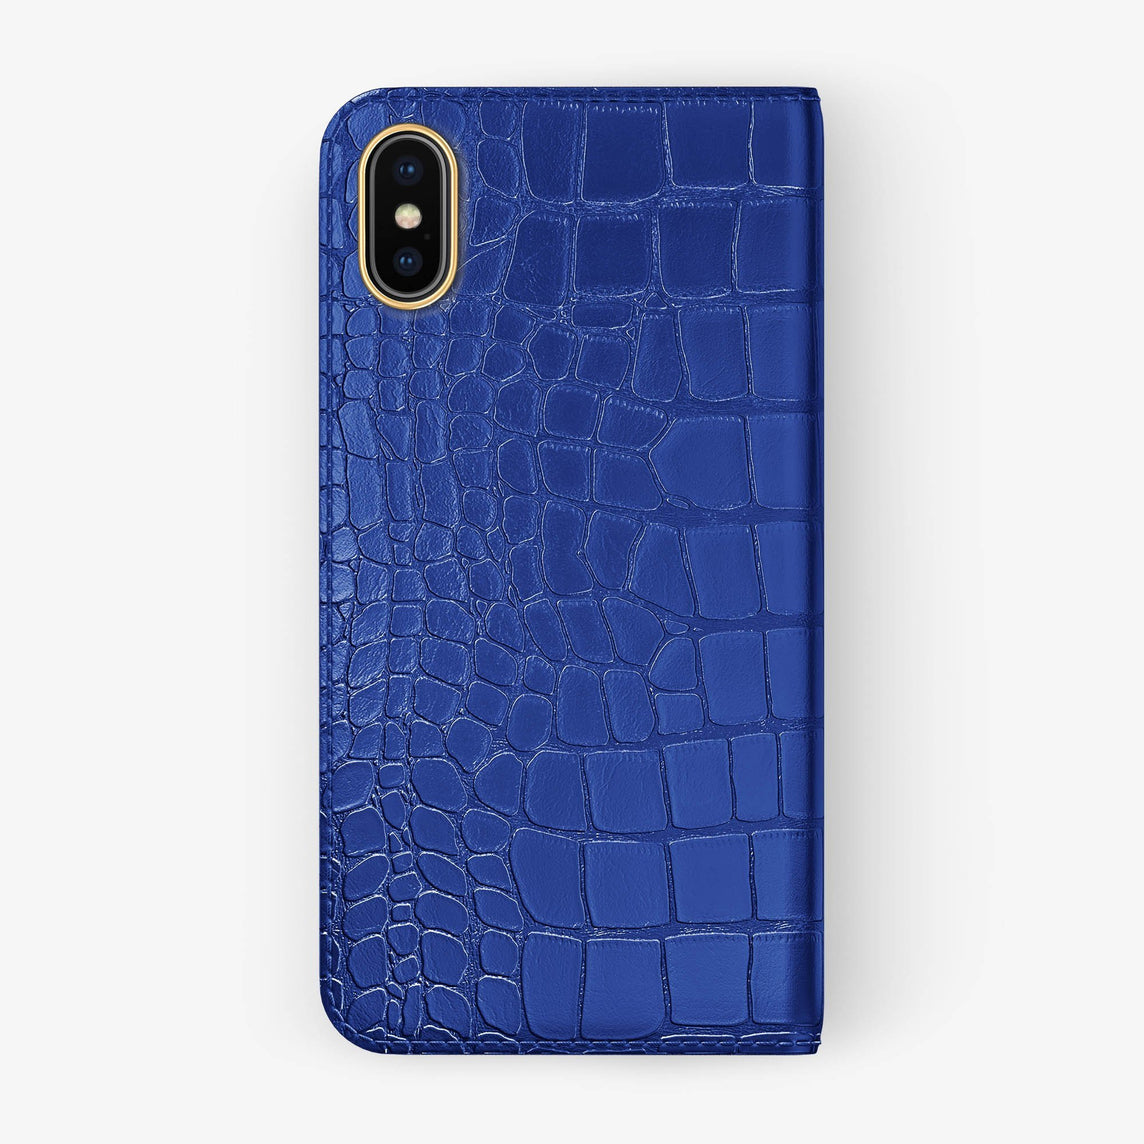 Alligator Folio Case iPhone X/Xs | Peony Blue - Yellow Gold without-personalization